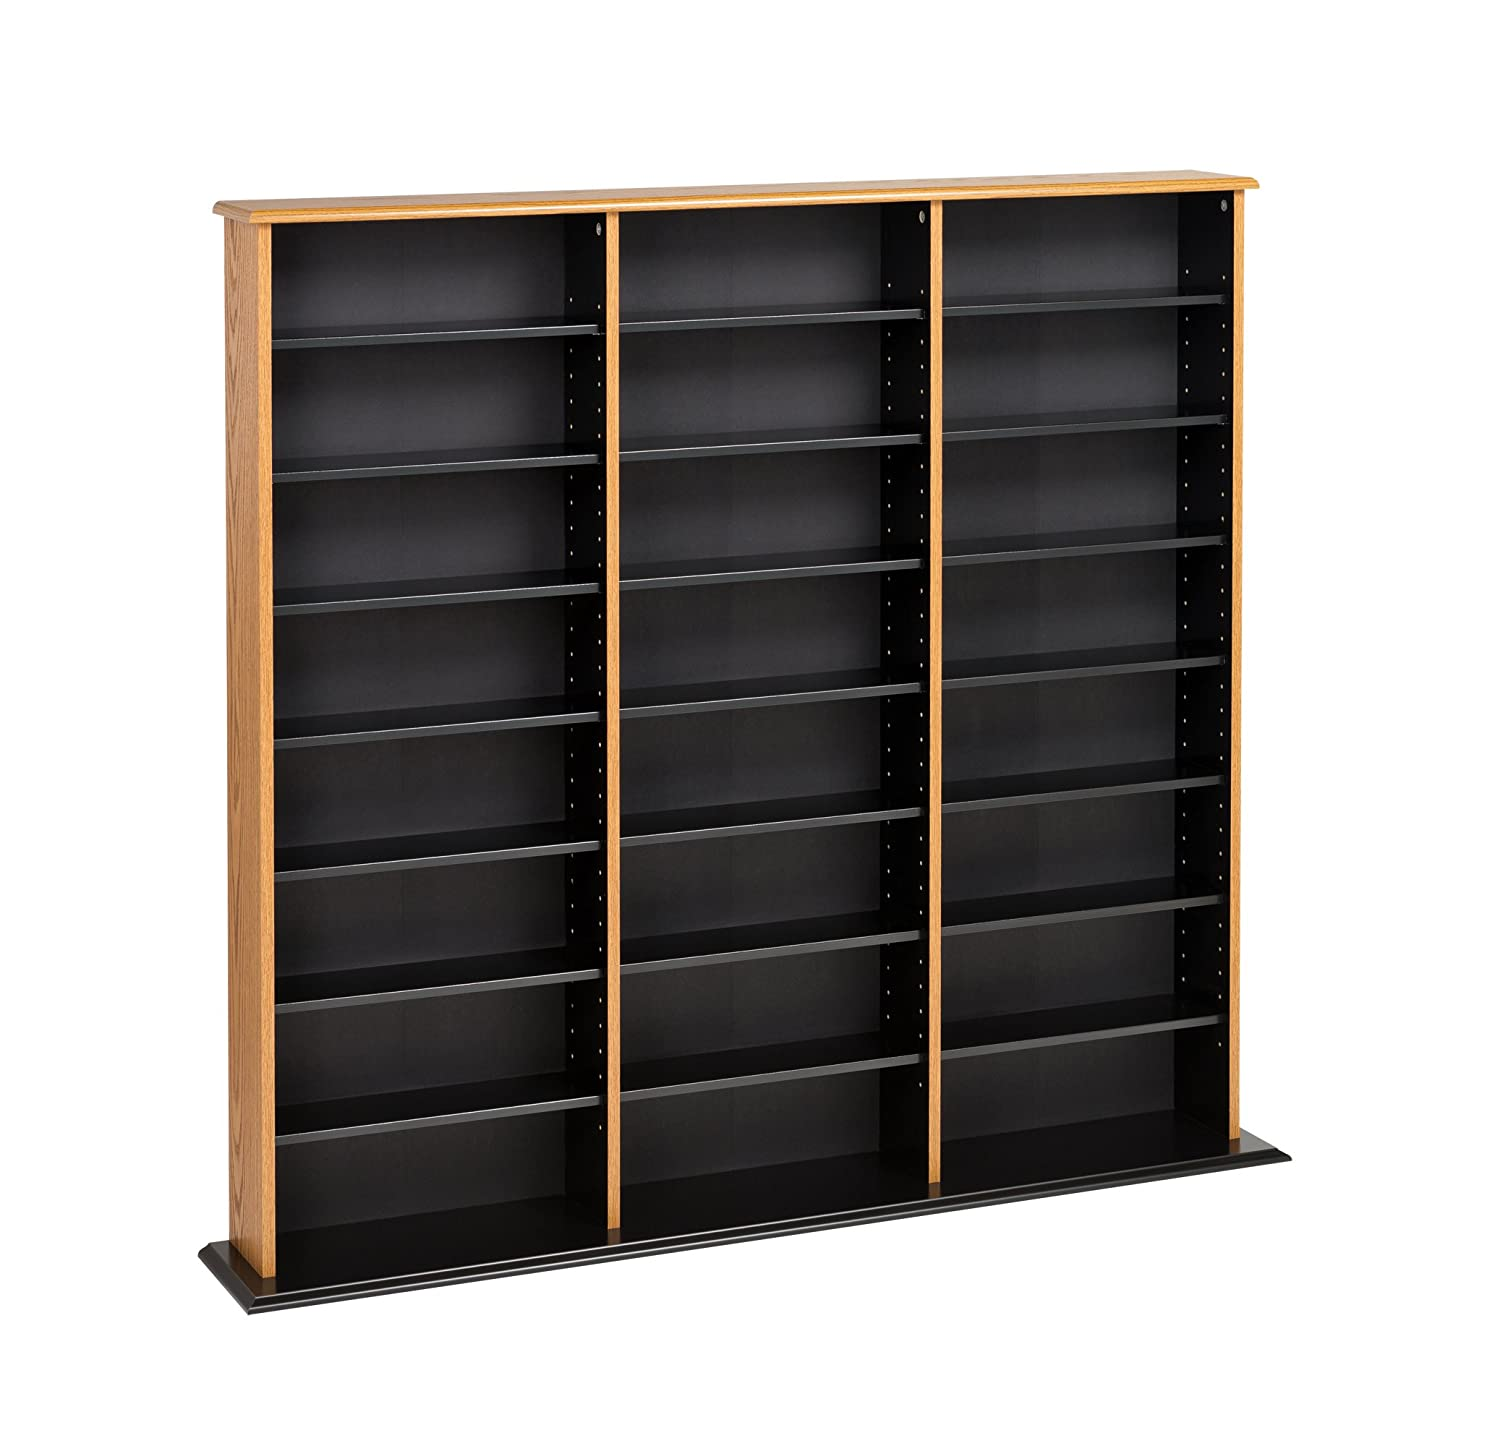 Cherry Wood Dvd Storage Cabinet Amazoncom Cherry Black Triple Width Wall Storage Kitchen Dining